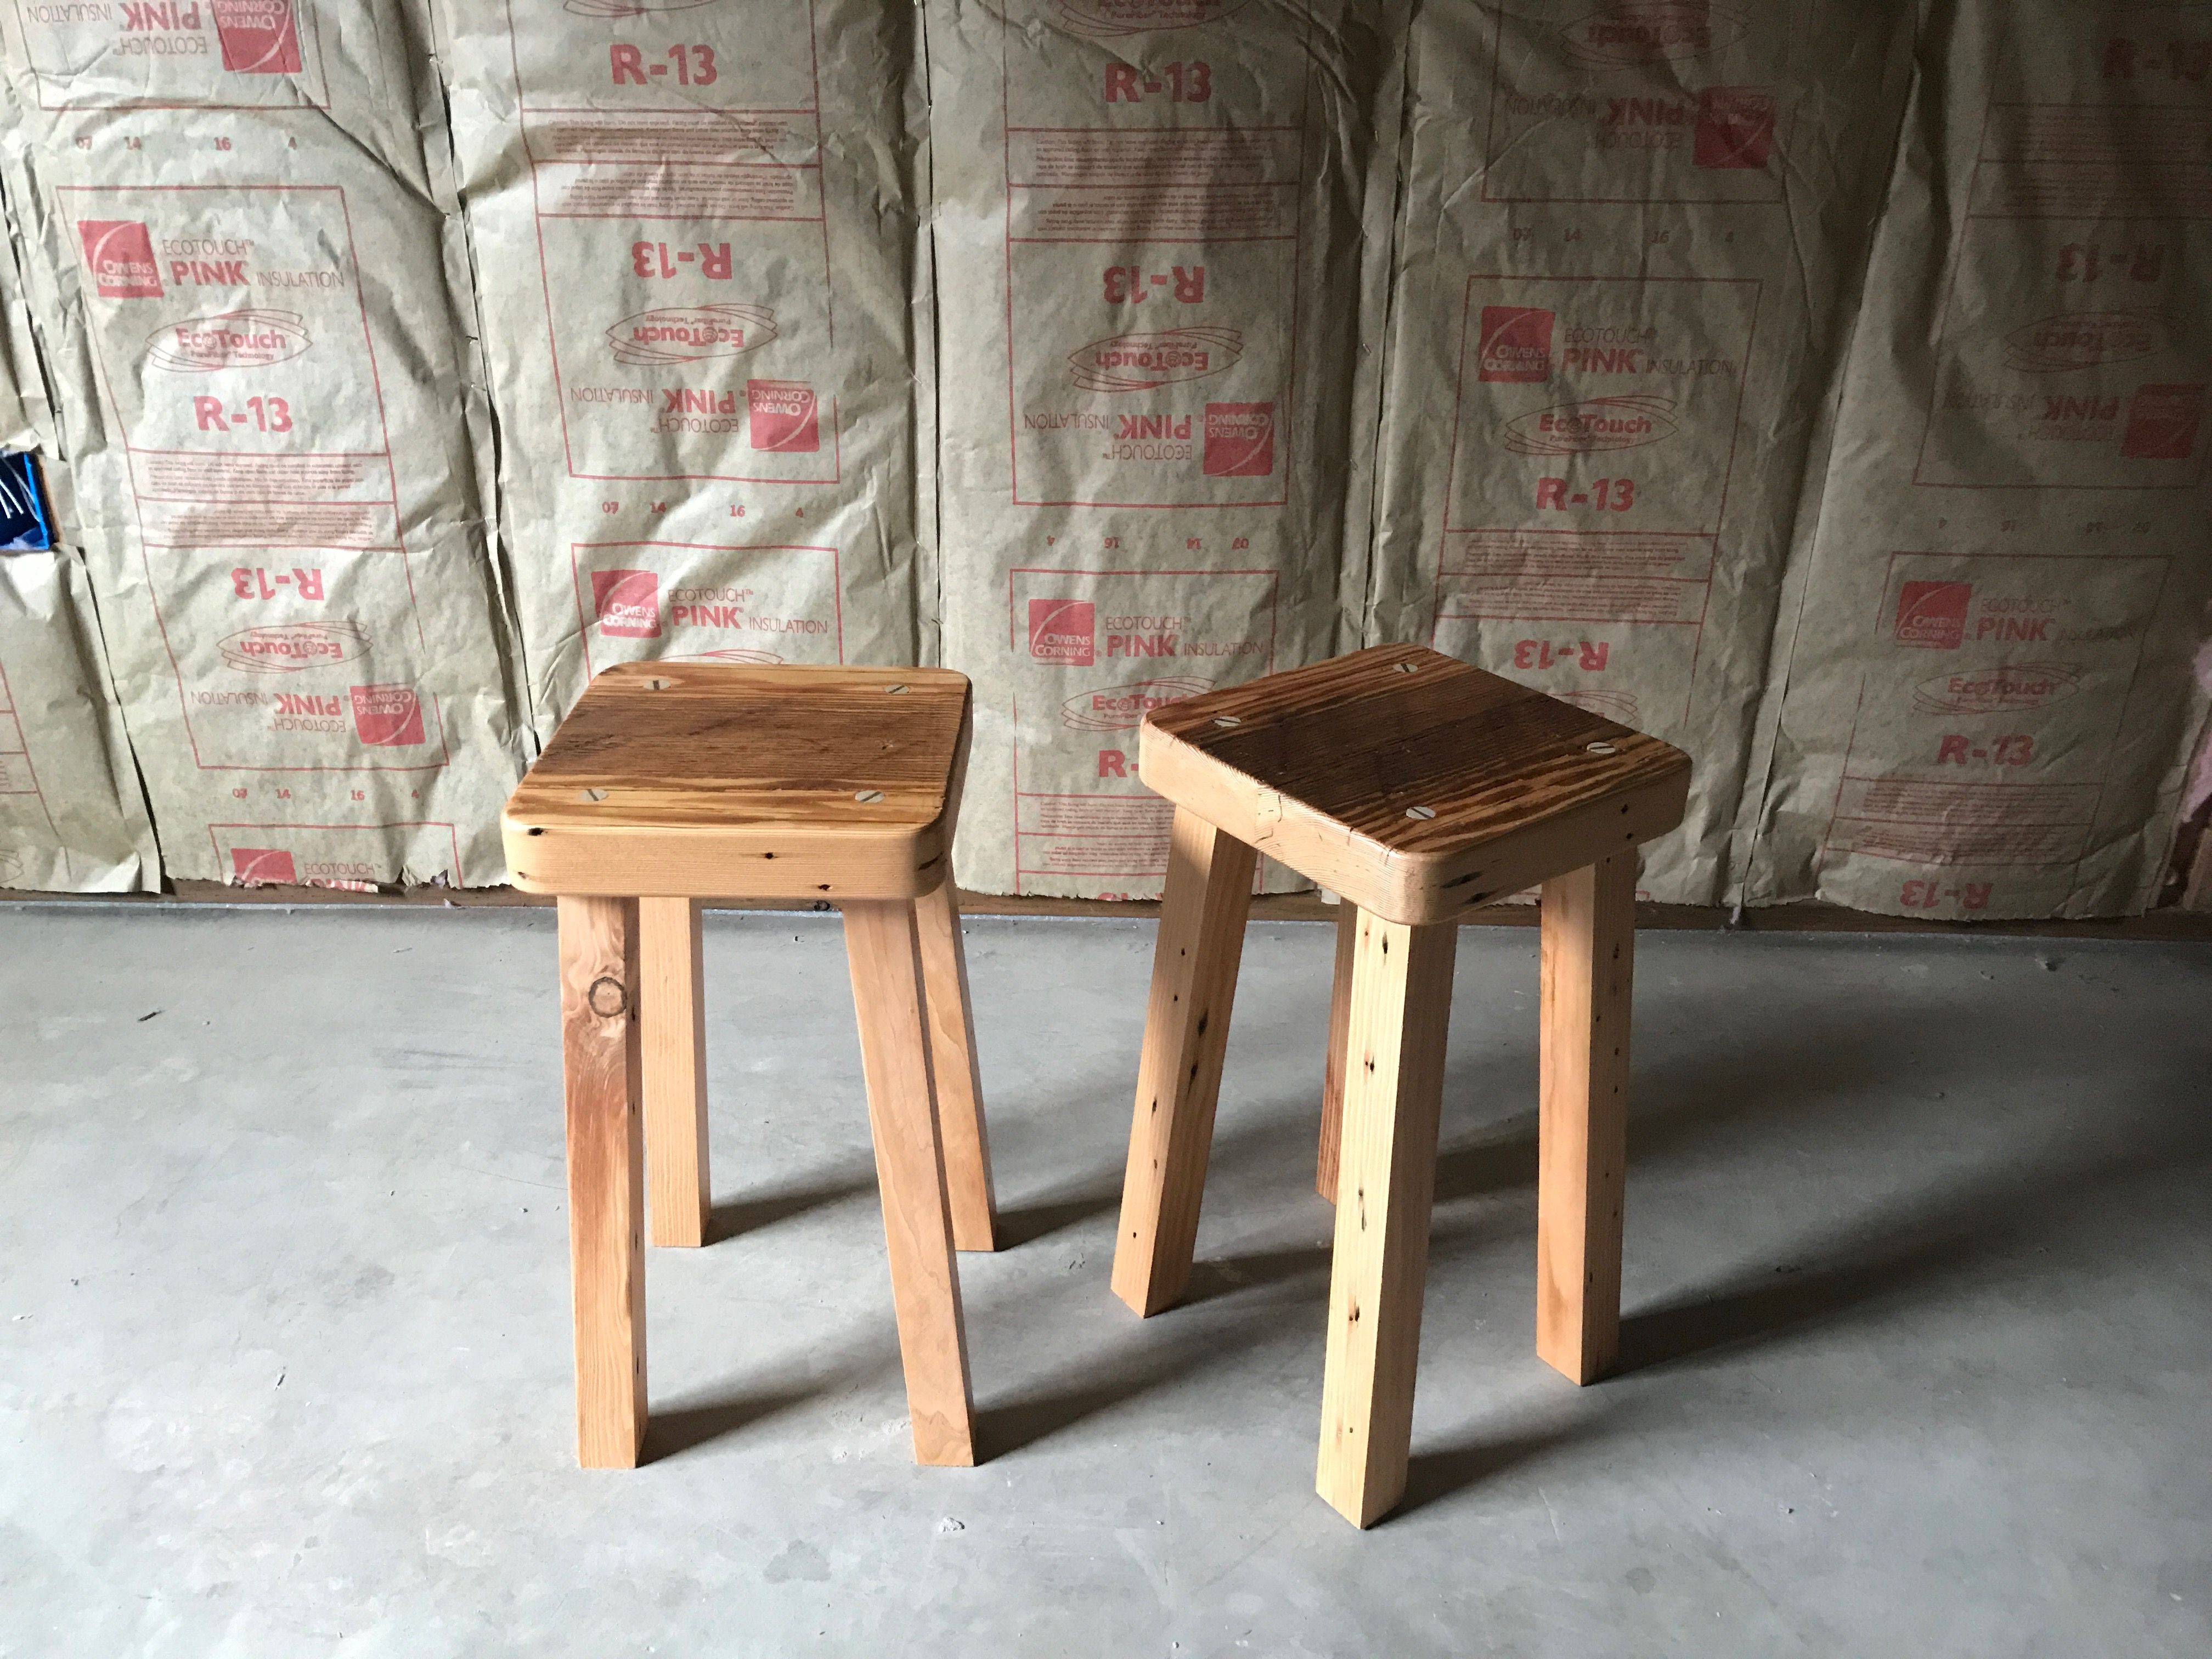 The Simple Stool